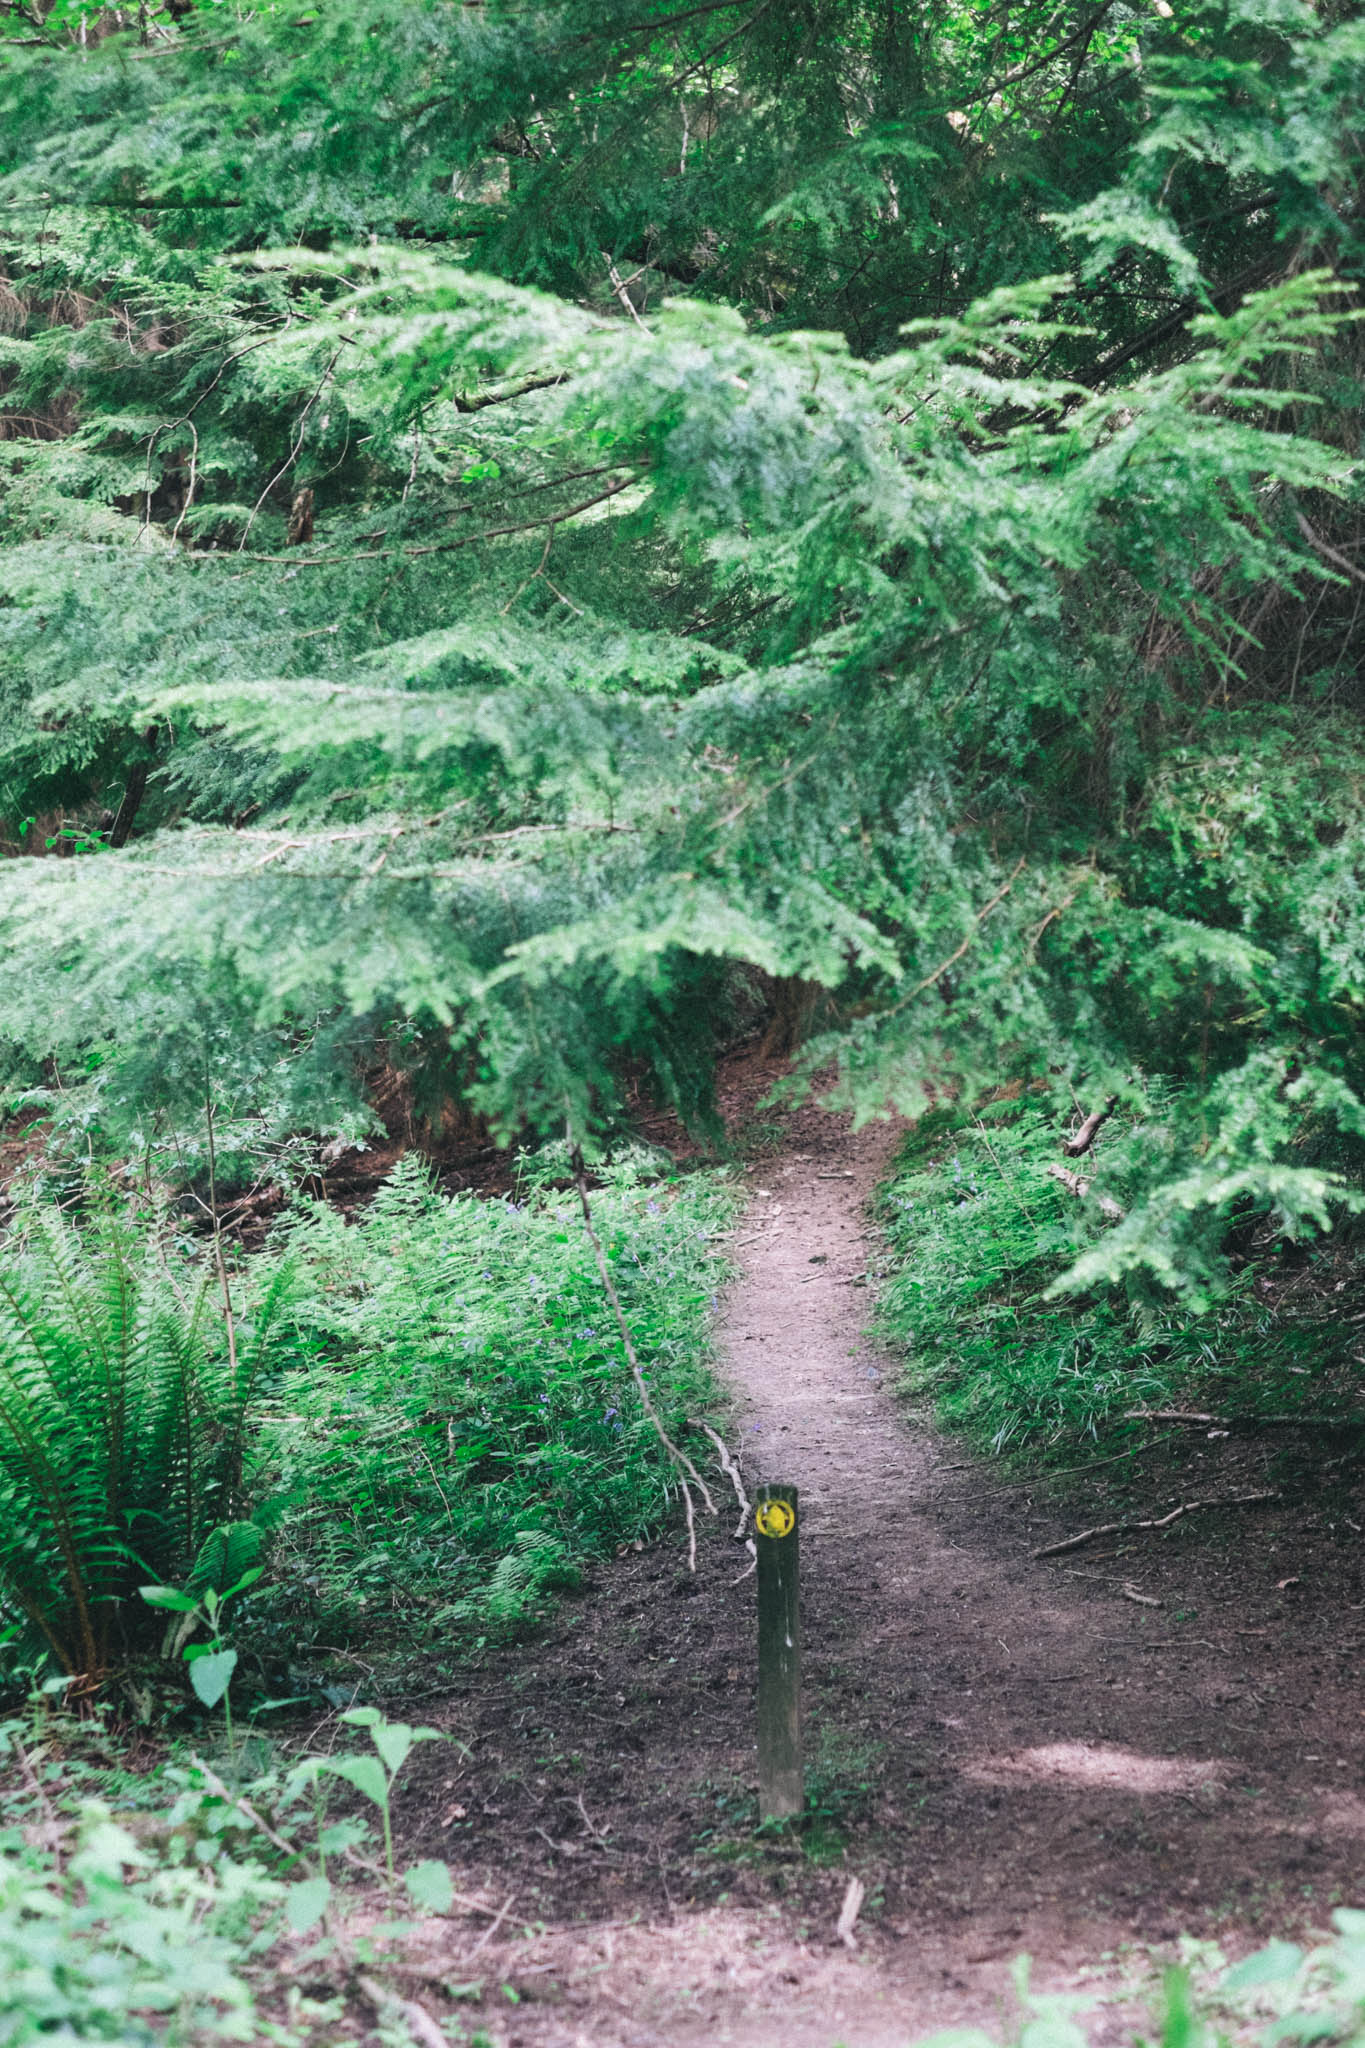 Sussex walks - Sheffield Forest circular on Retreat - a food and lifestyle blog for busy people. Photography by Emma Gutteridge for Retreat blog.